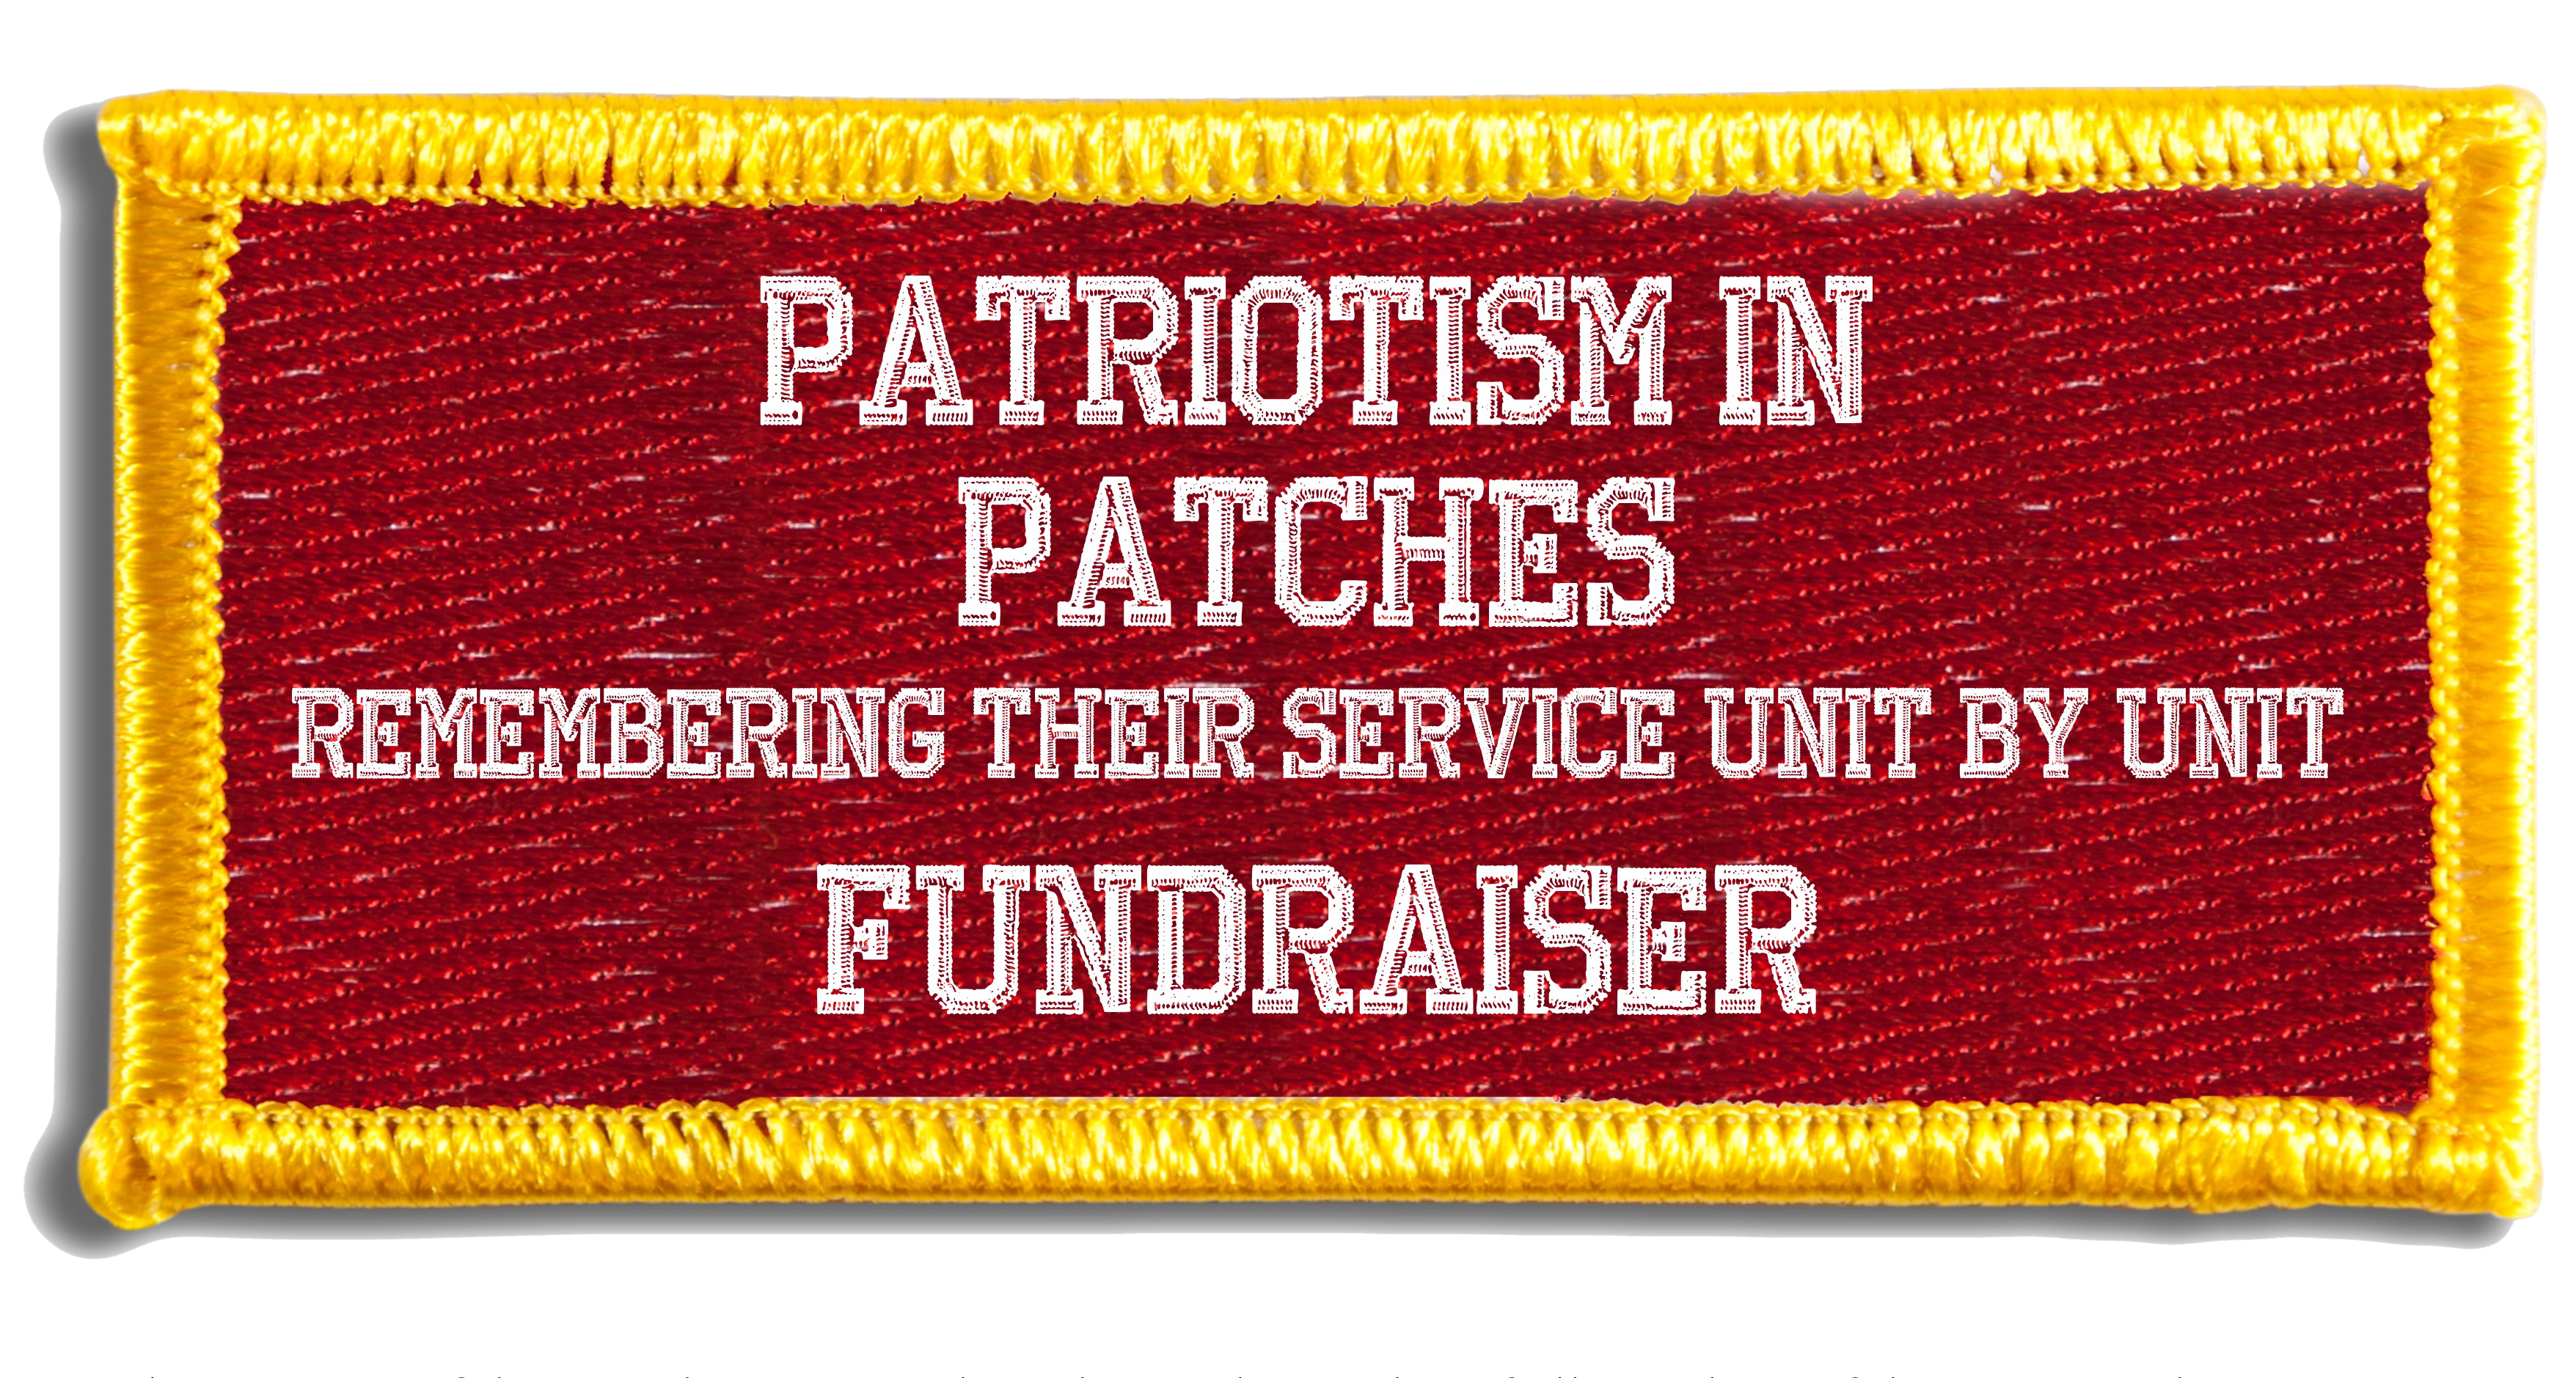 patches-fundraiser-logo